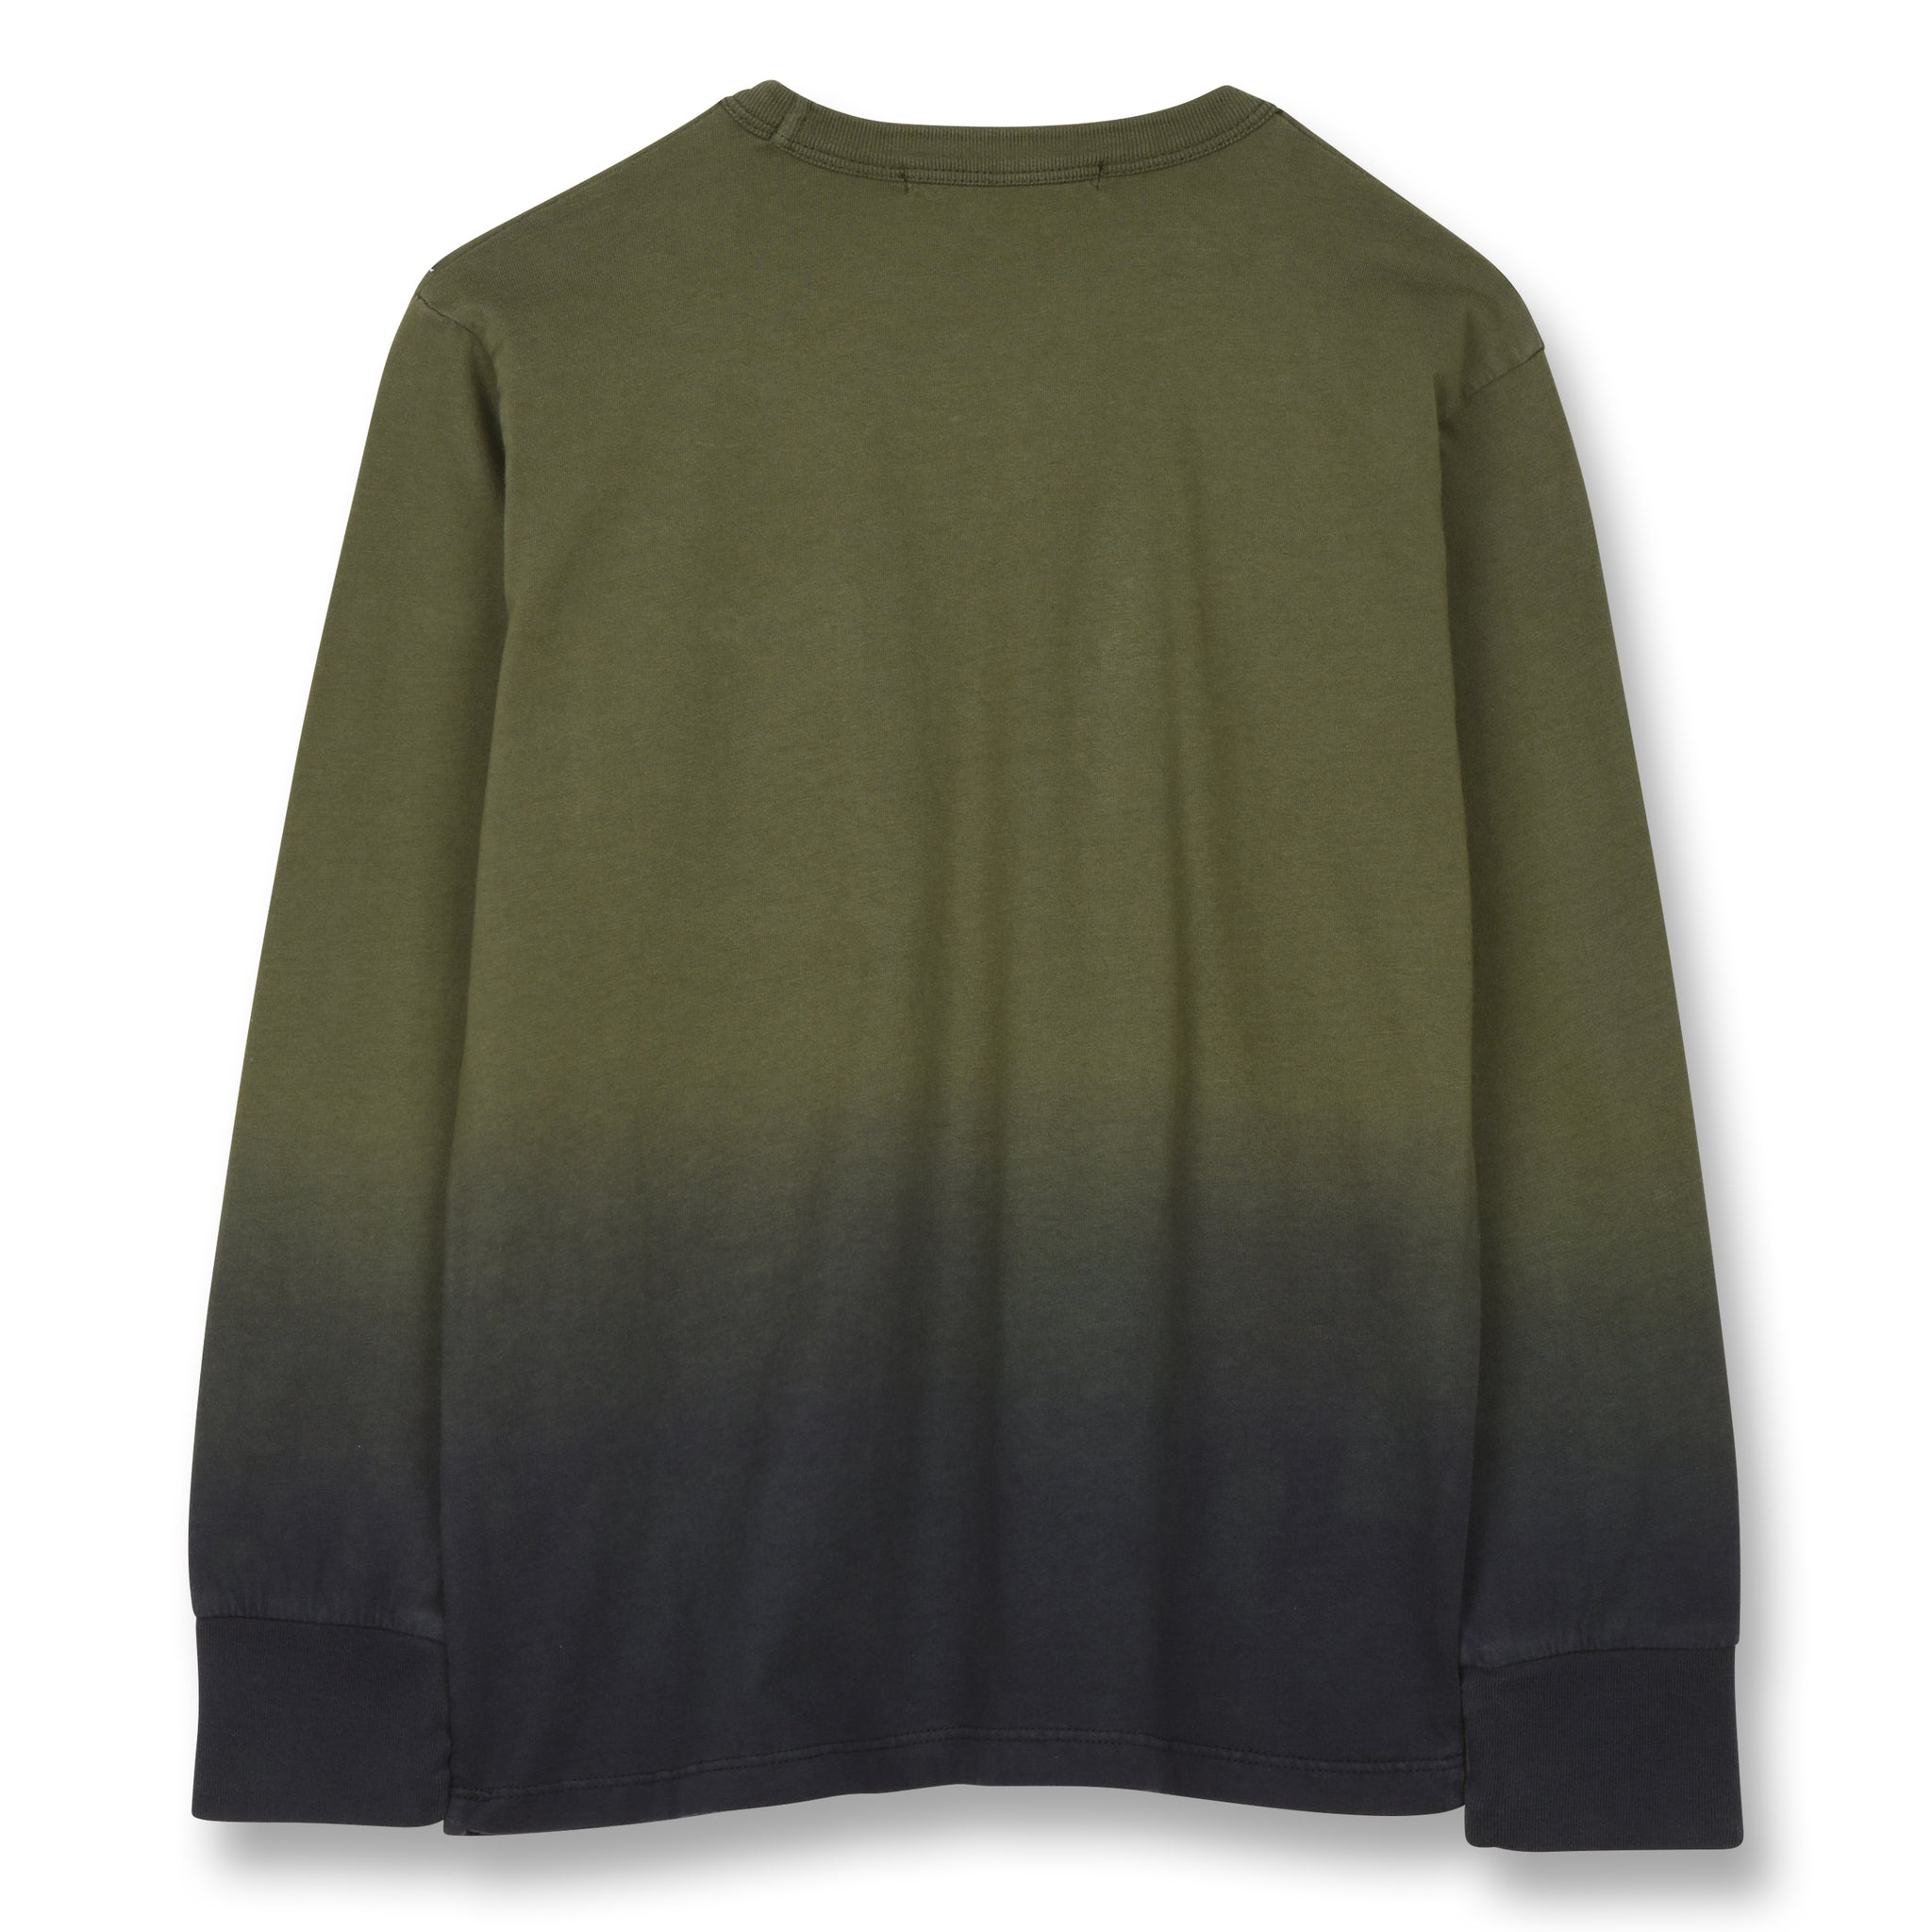 NICO Khaki Dip Dye - Long Sleeves T-shirt 2